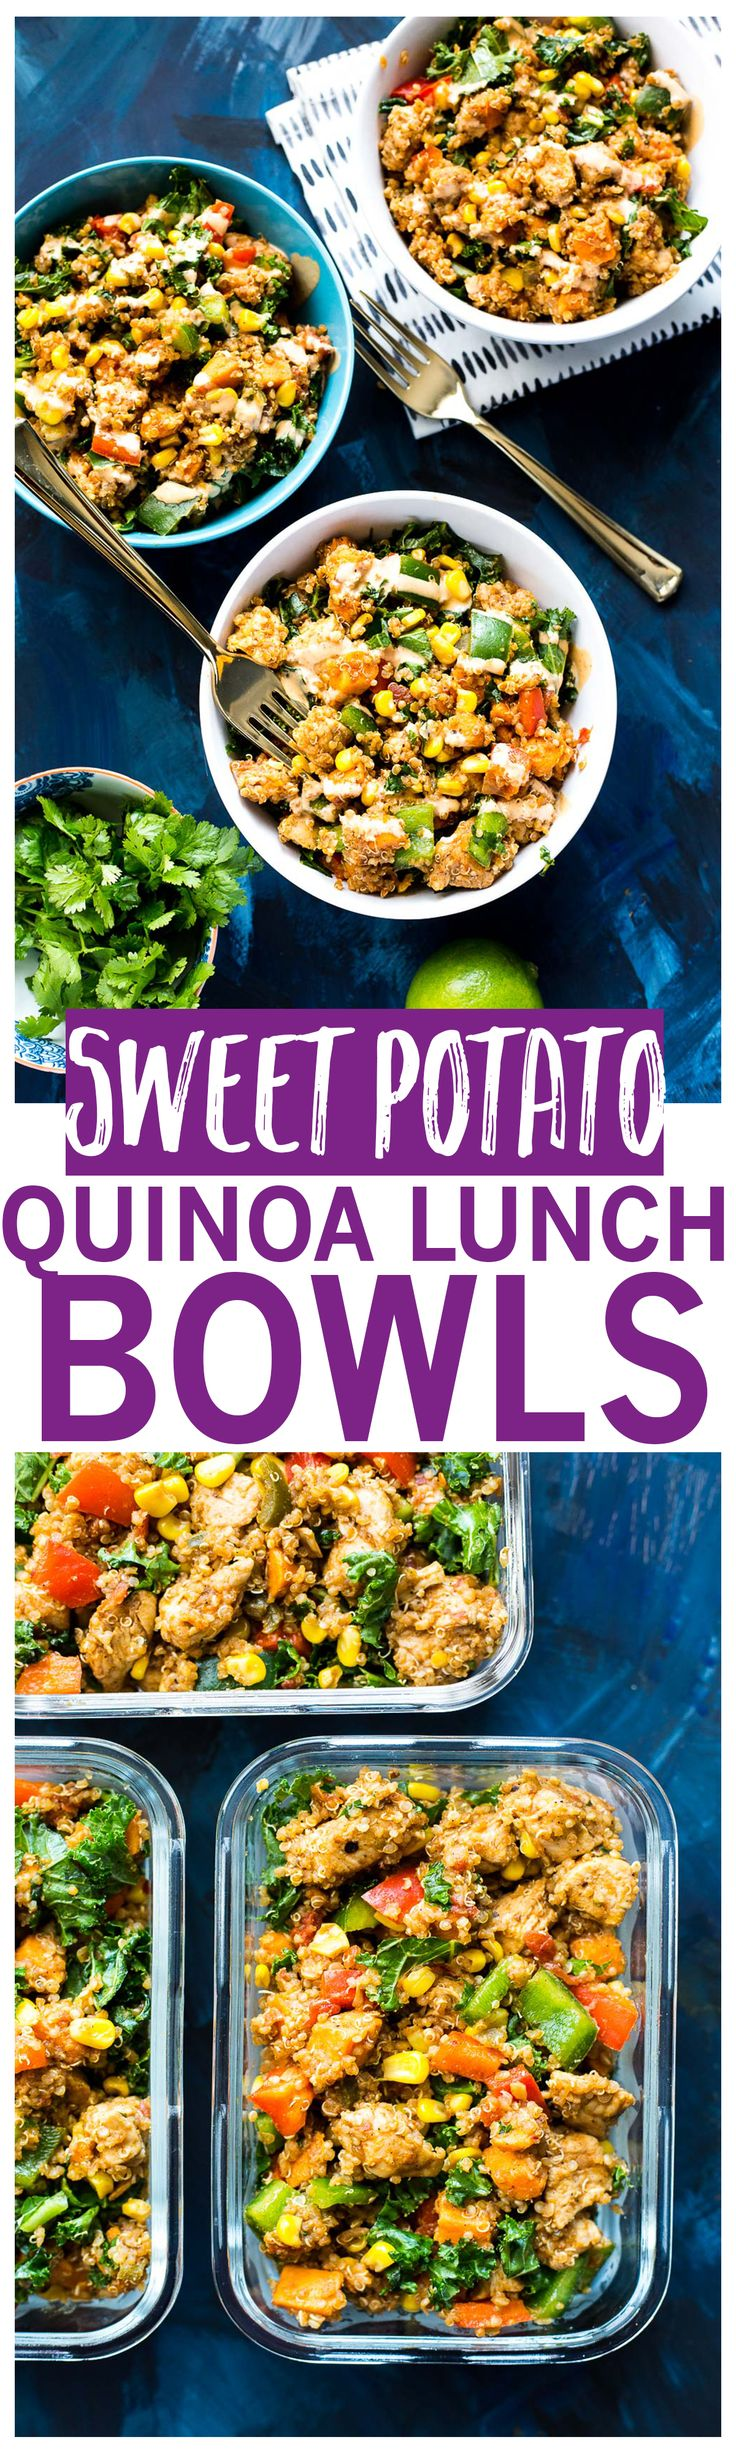 Sweet Potato, Kale & Quinoa Lunch Bowls are the ultimate make-ahead lunch, filled with tons of veggies and chicken, then drizzled with a spicy chipotle sauce!